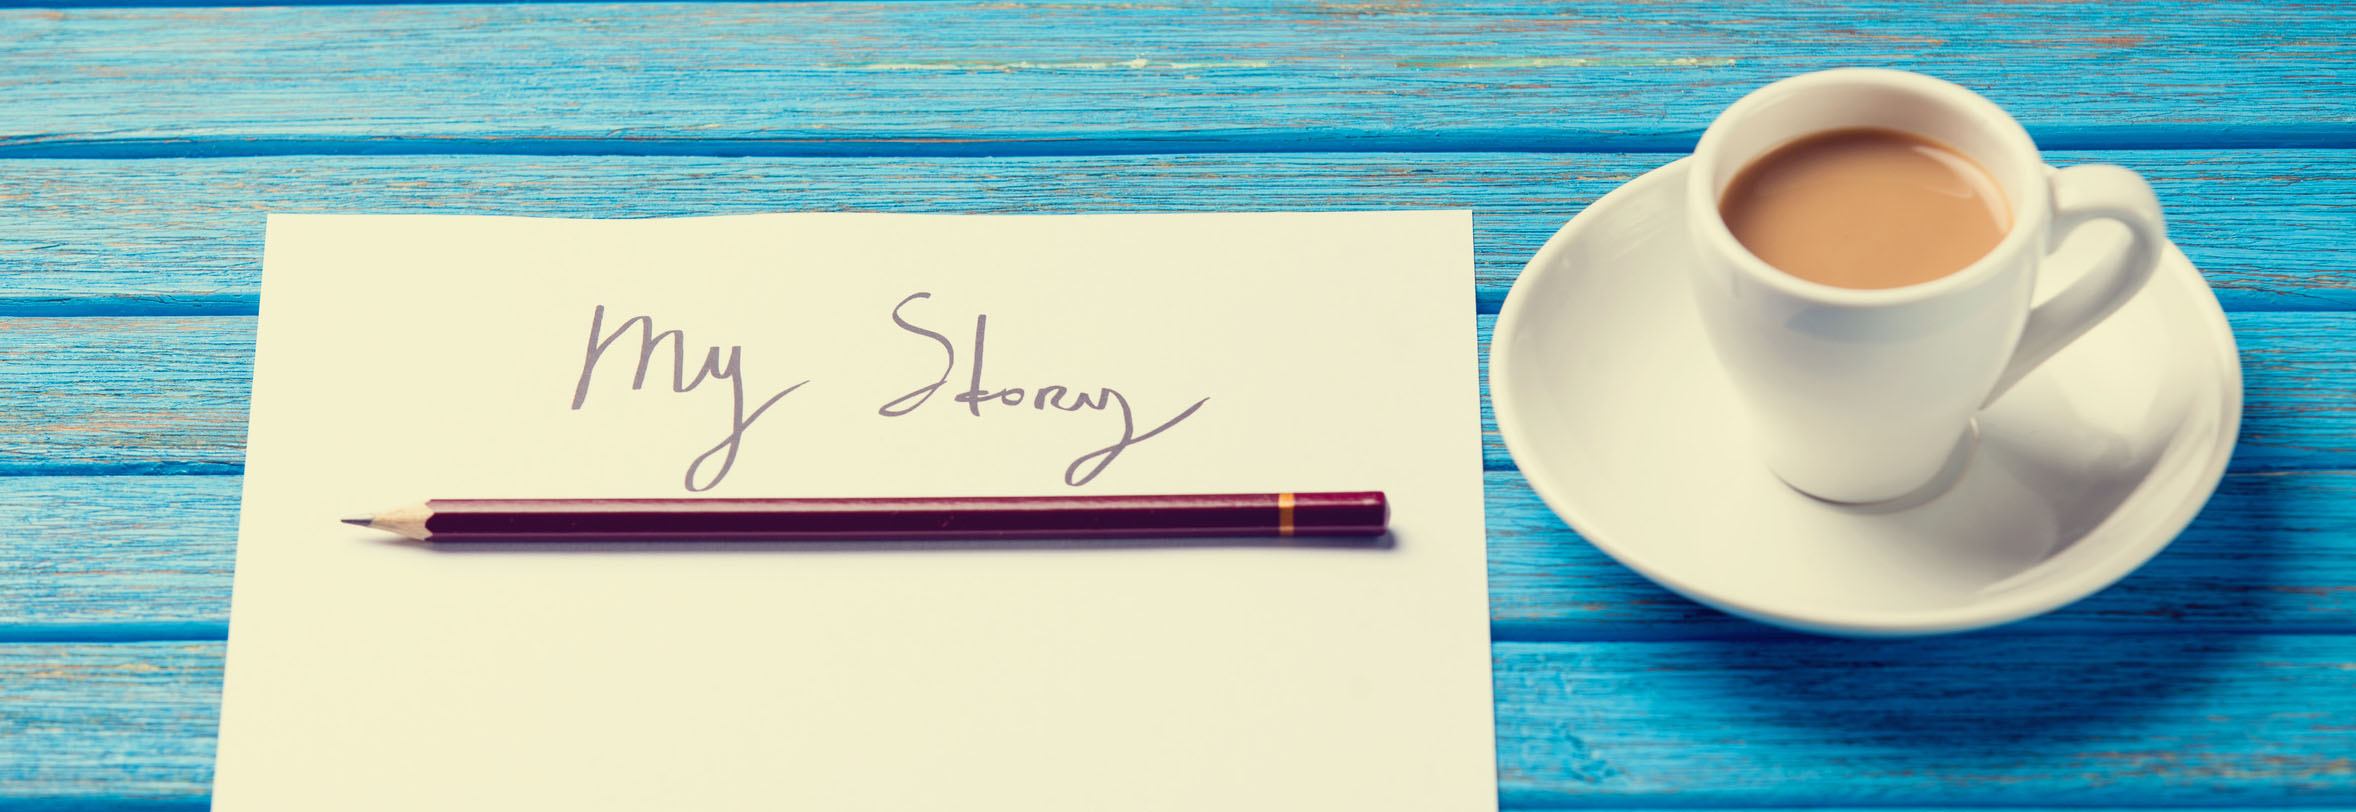 pencil and paper with My Story words near cup of coffee on blue wooden table